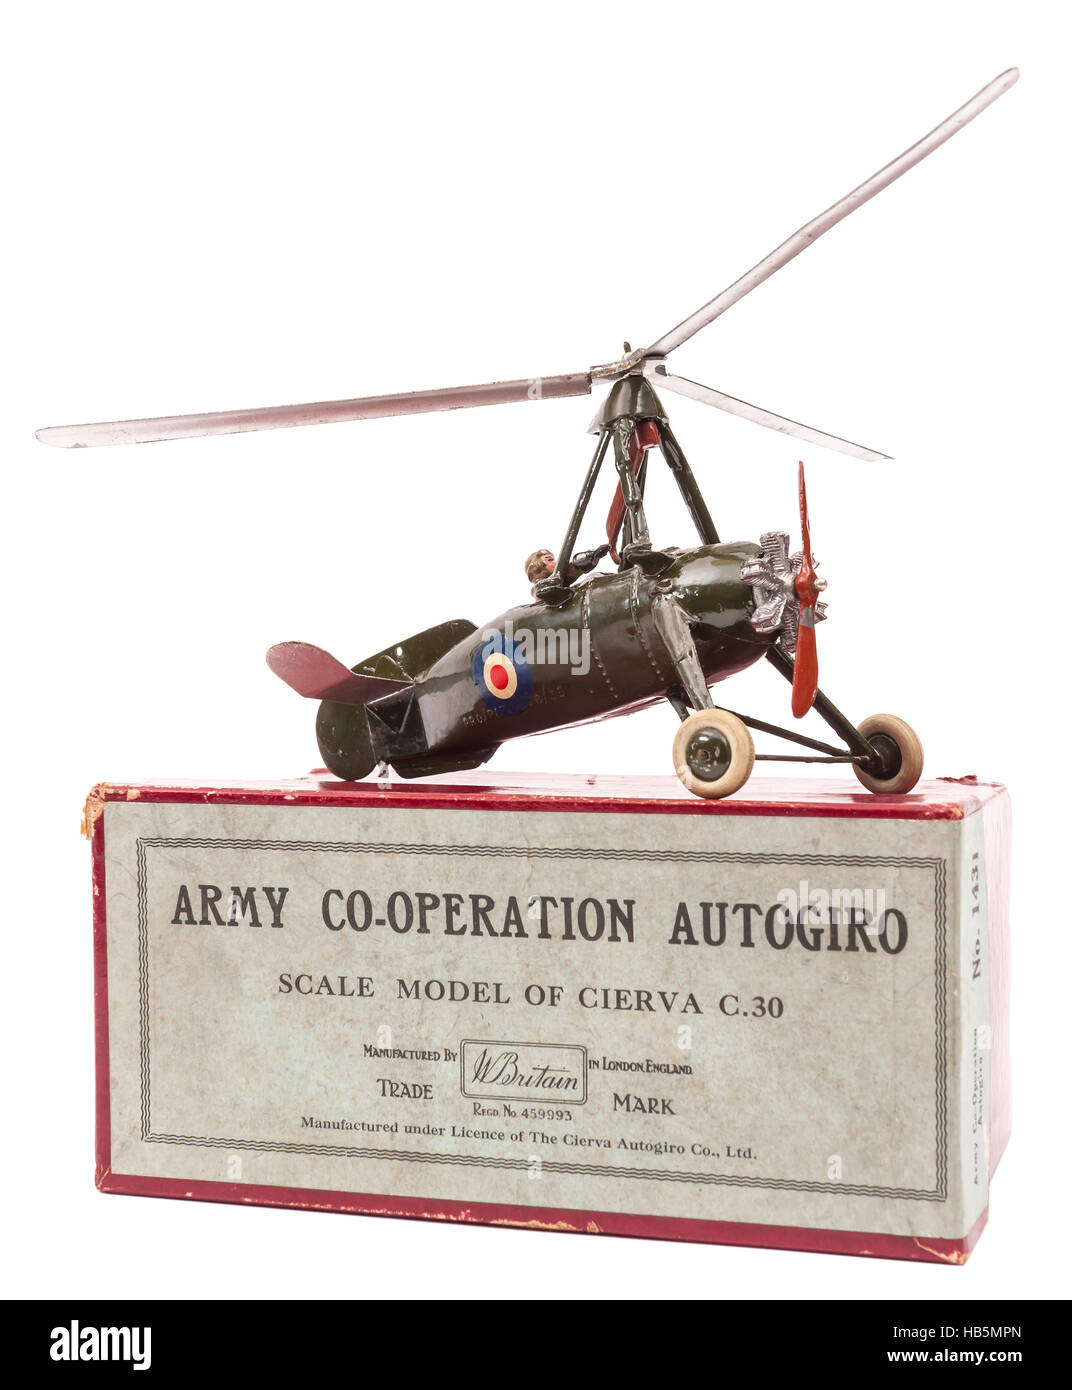 1950s Britain's Toys Army Co-operation Autogiro children's diecast metal toy Stock Photo